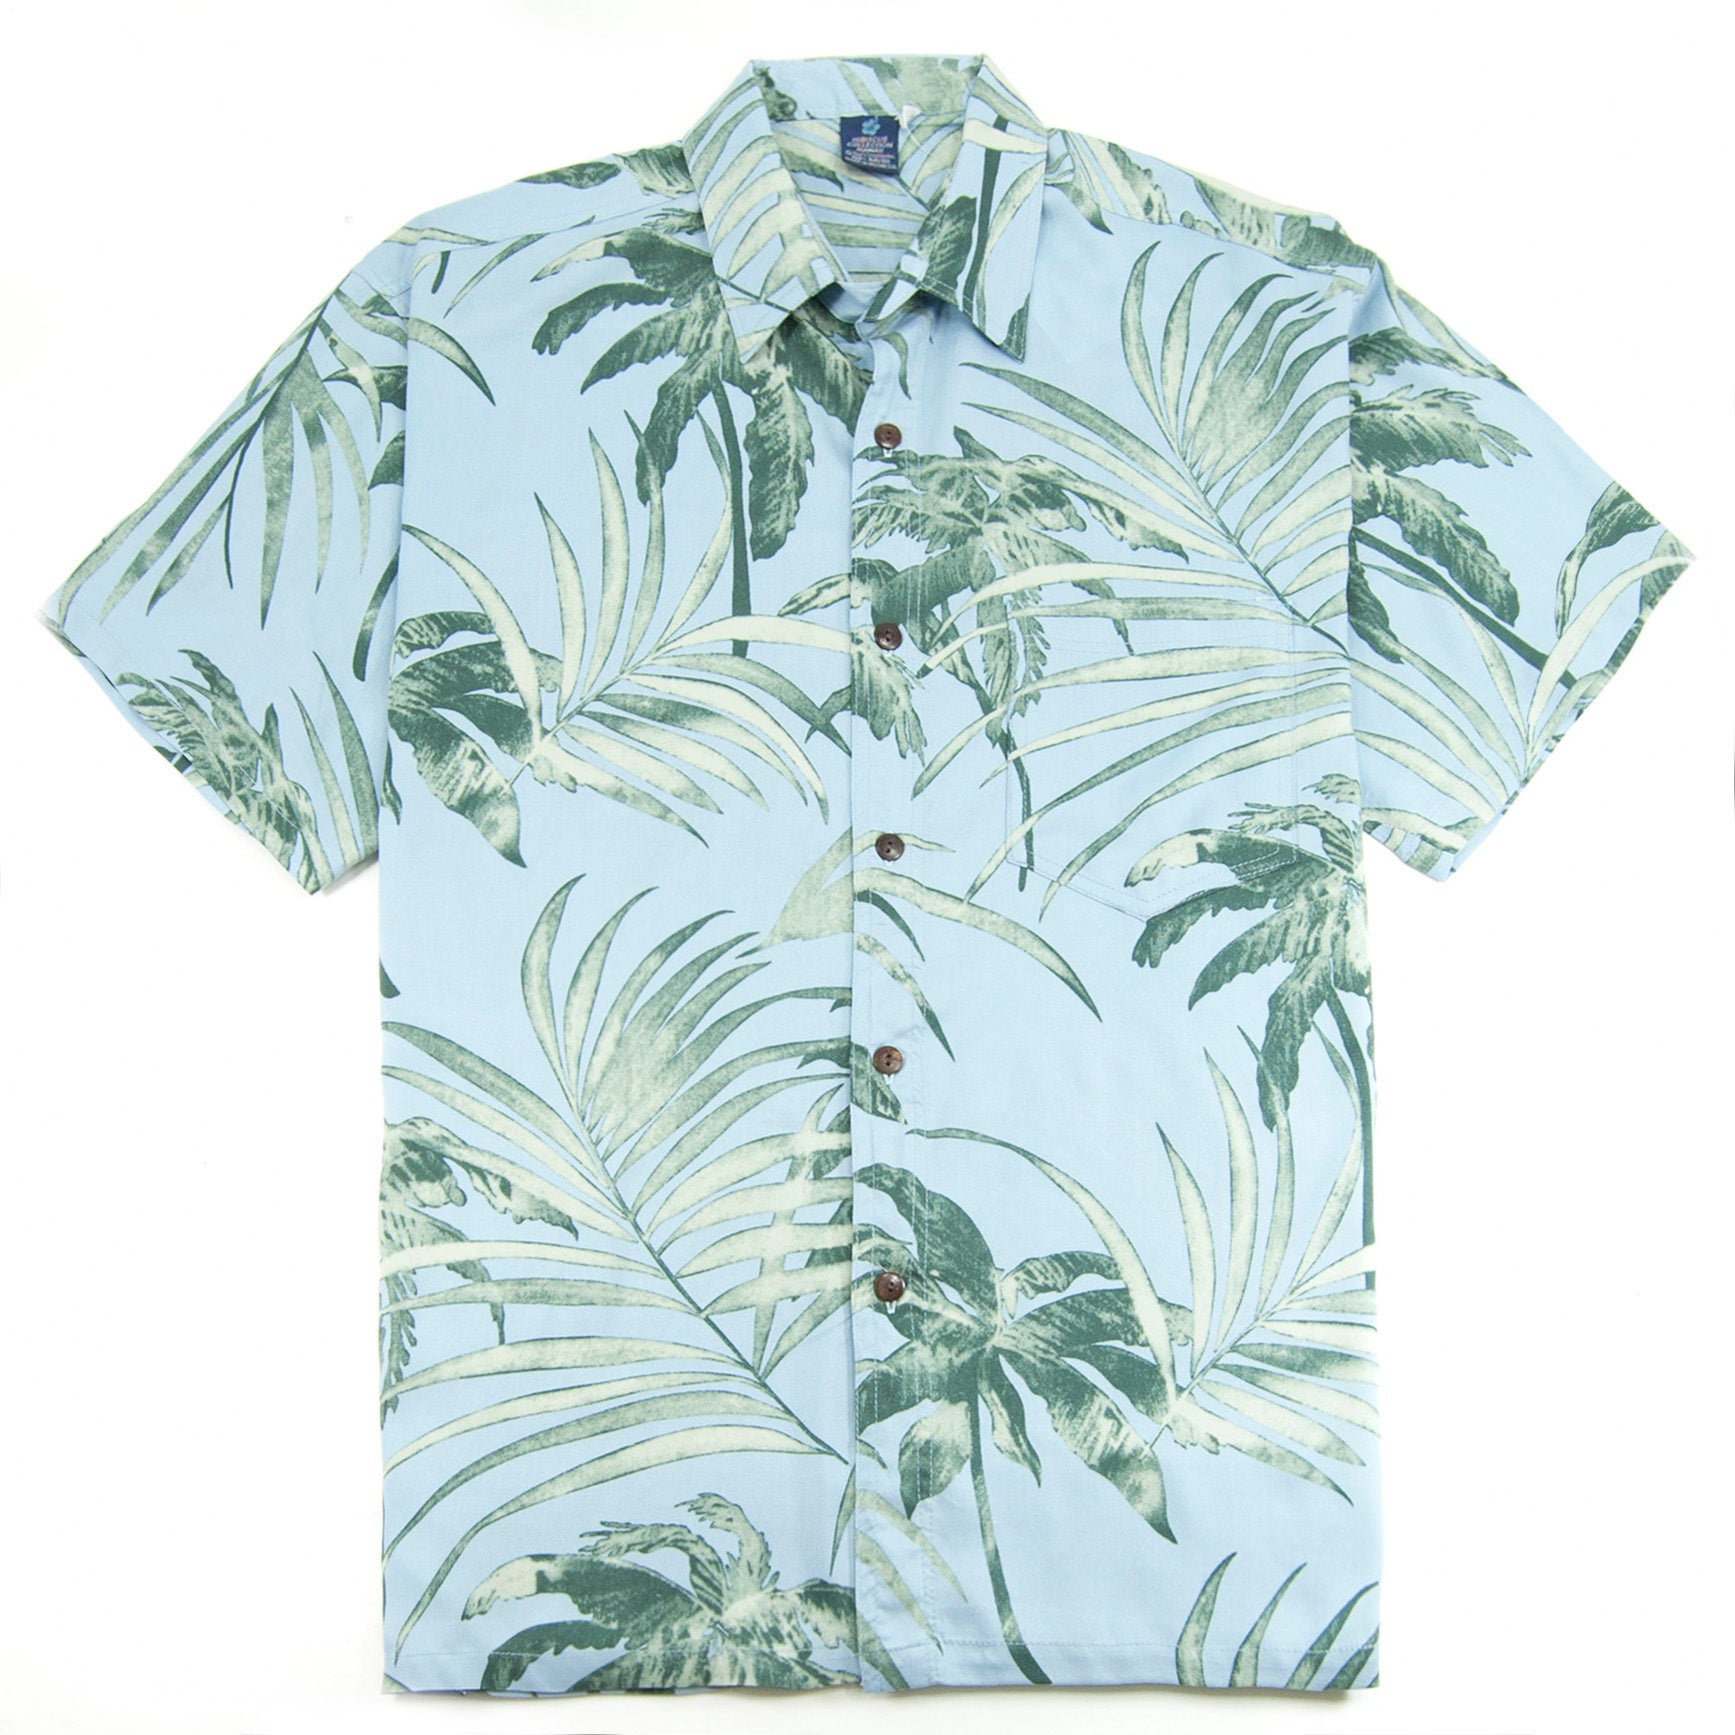 French Palm Shirt